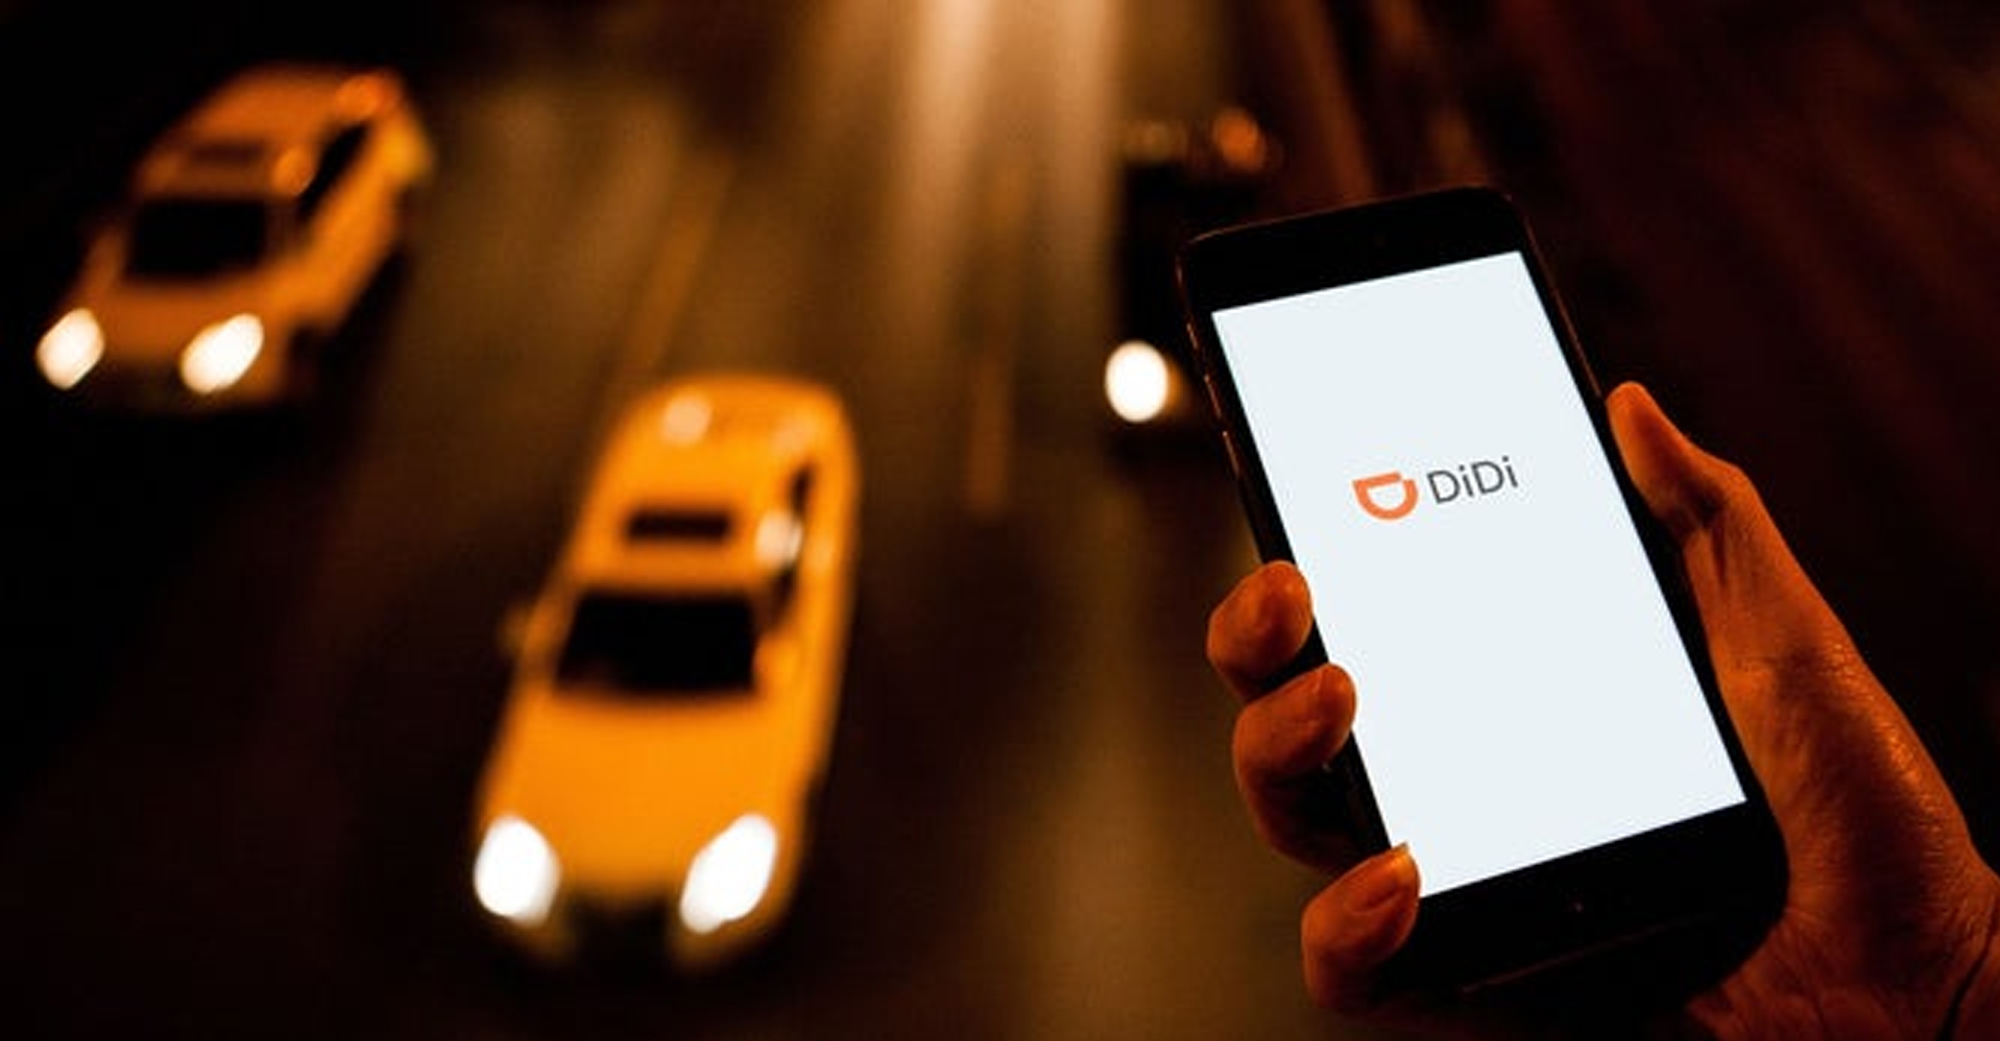 Didi adds vaccination stats to driver profiles in China